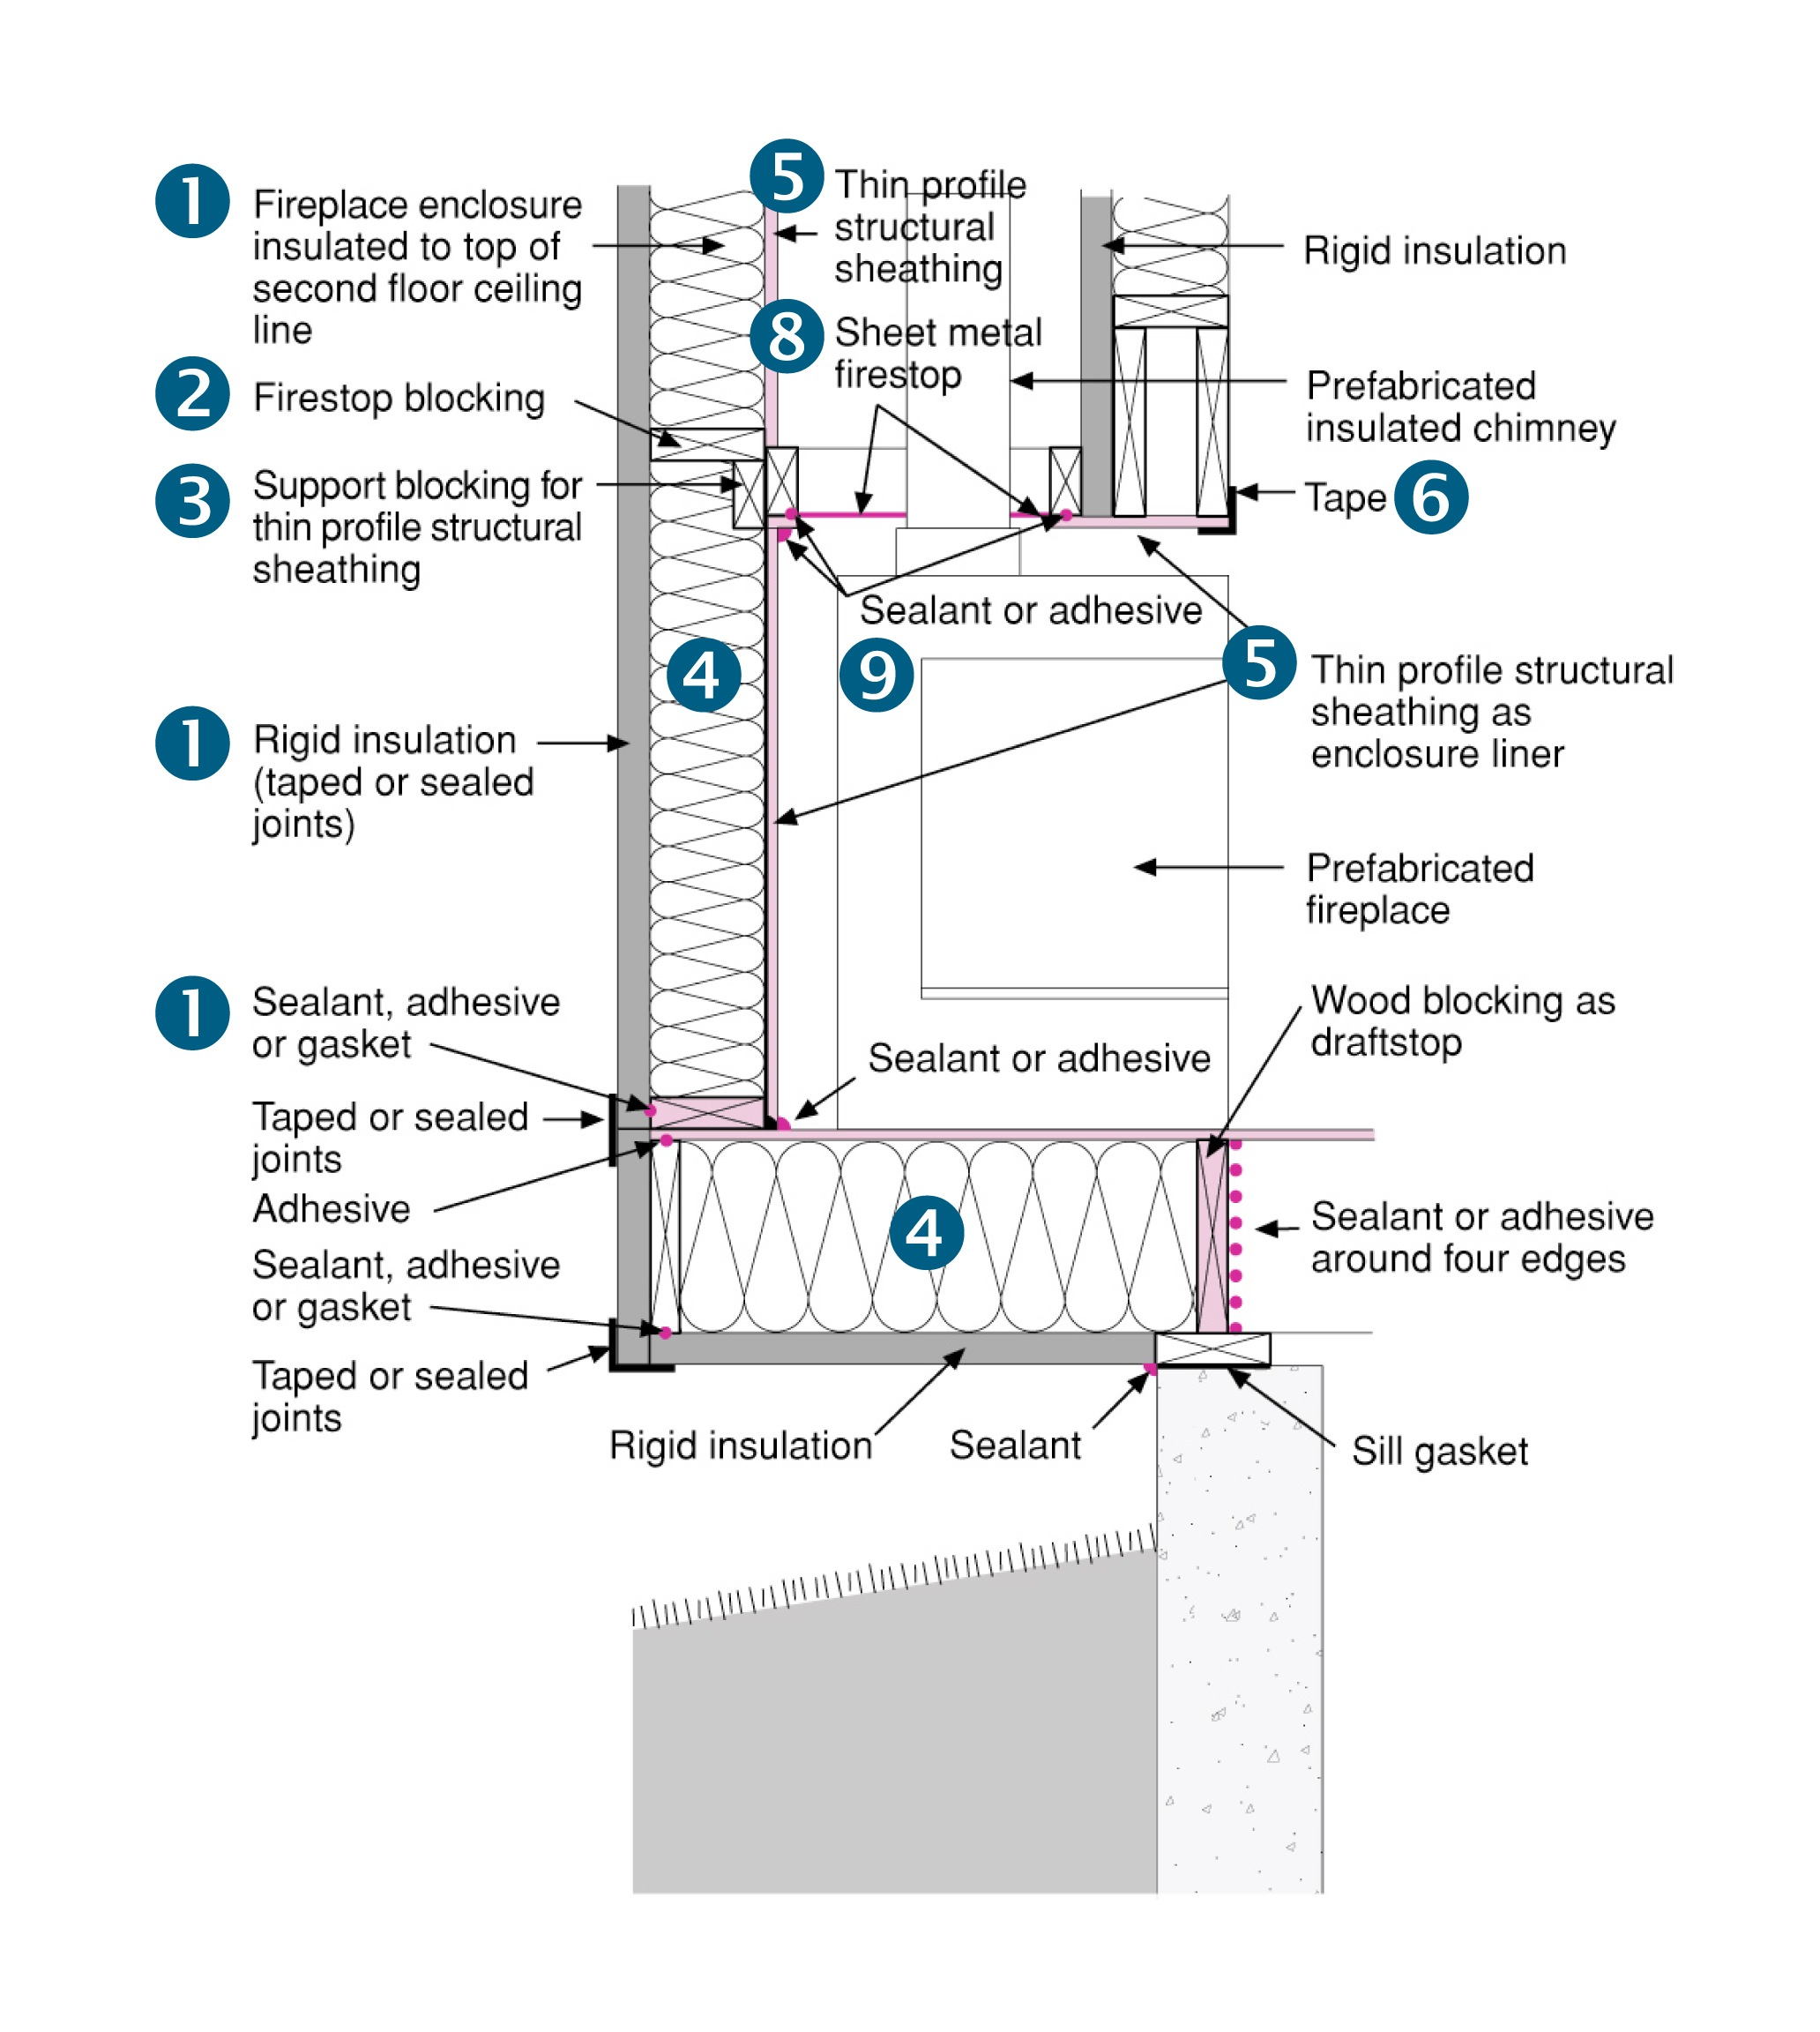 How To Stop Chimney Drafts - Best Balcony And Chimney Design 2017